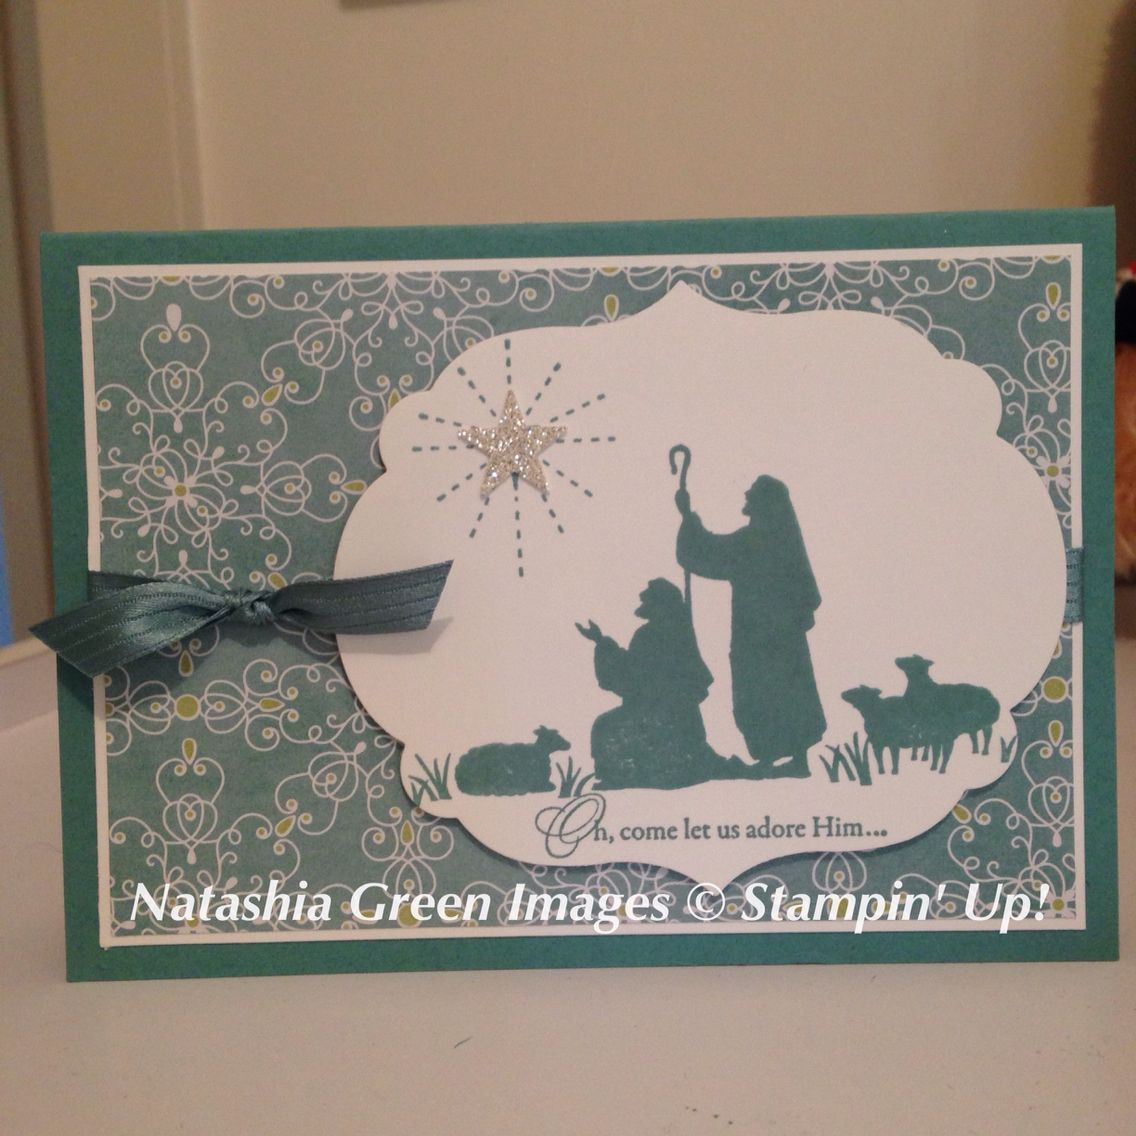 Every Blessing - Stampin' Up!